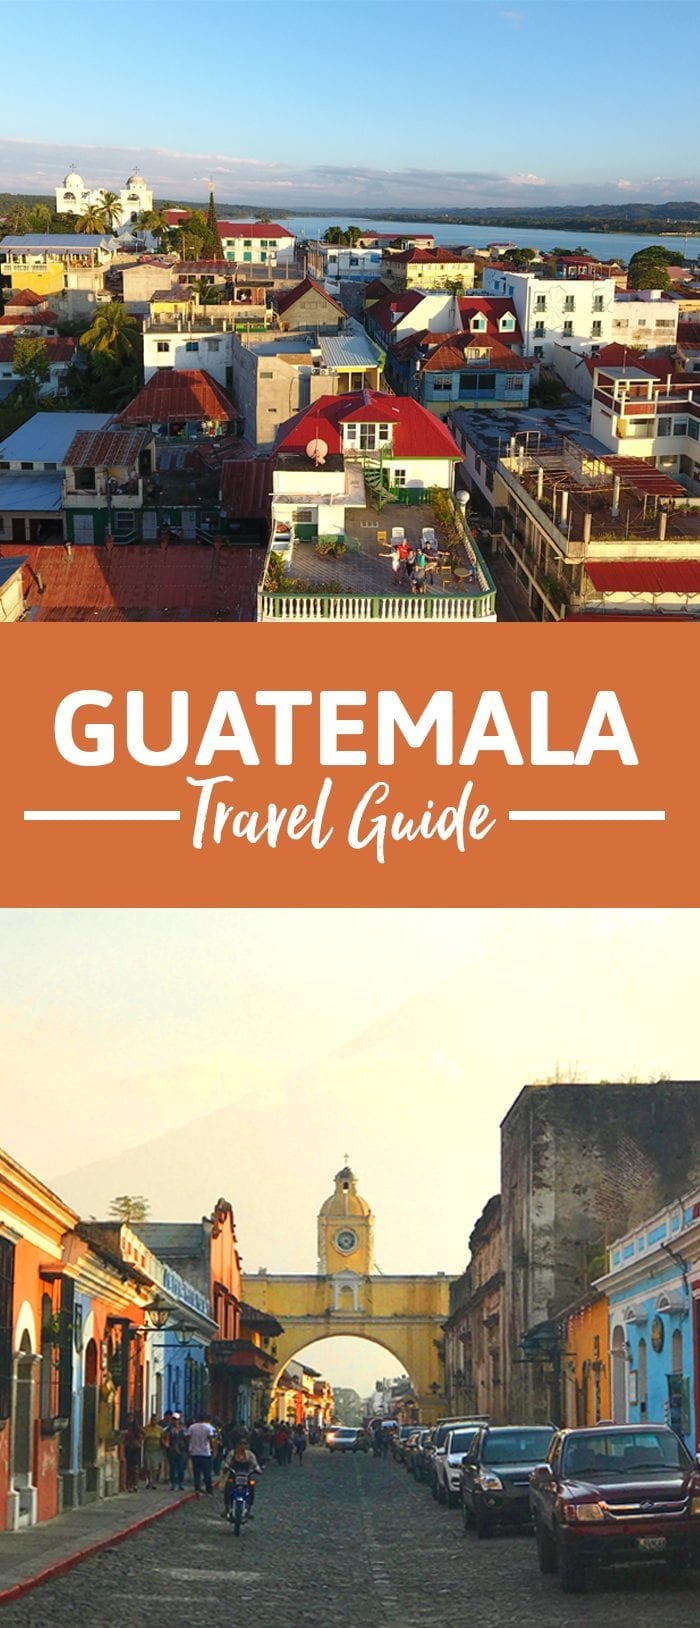 Paying a visit to Guatemala? This is a 10 day Guatemala Travel Guide full of adventure, for your next visit to this beautiful central american country.